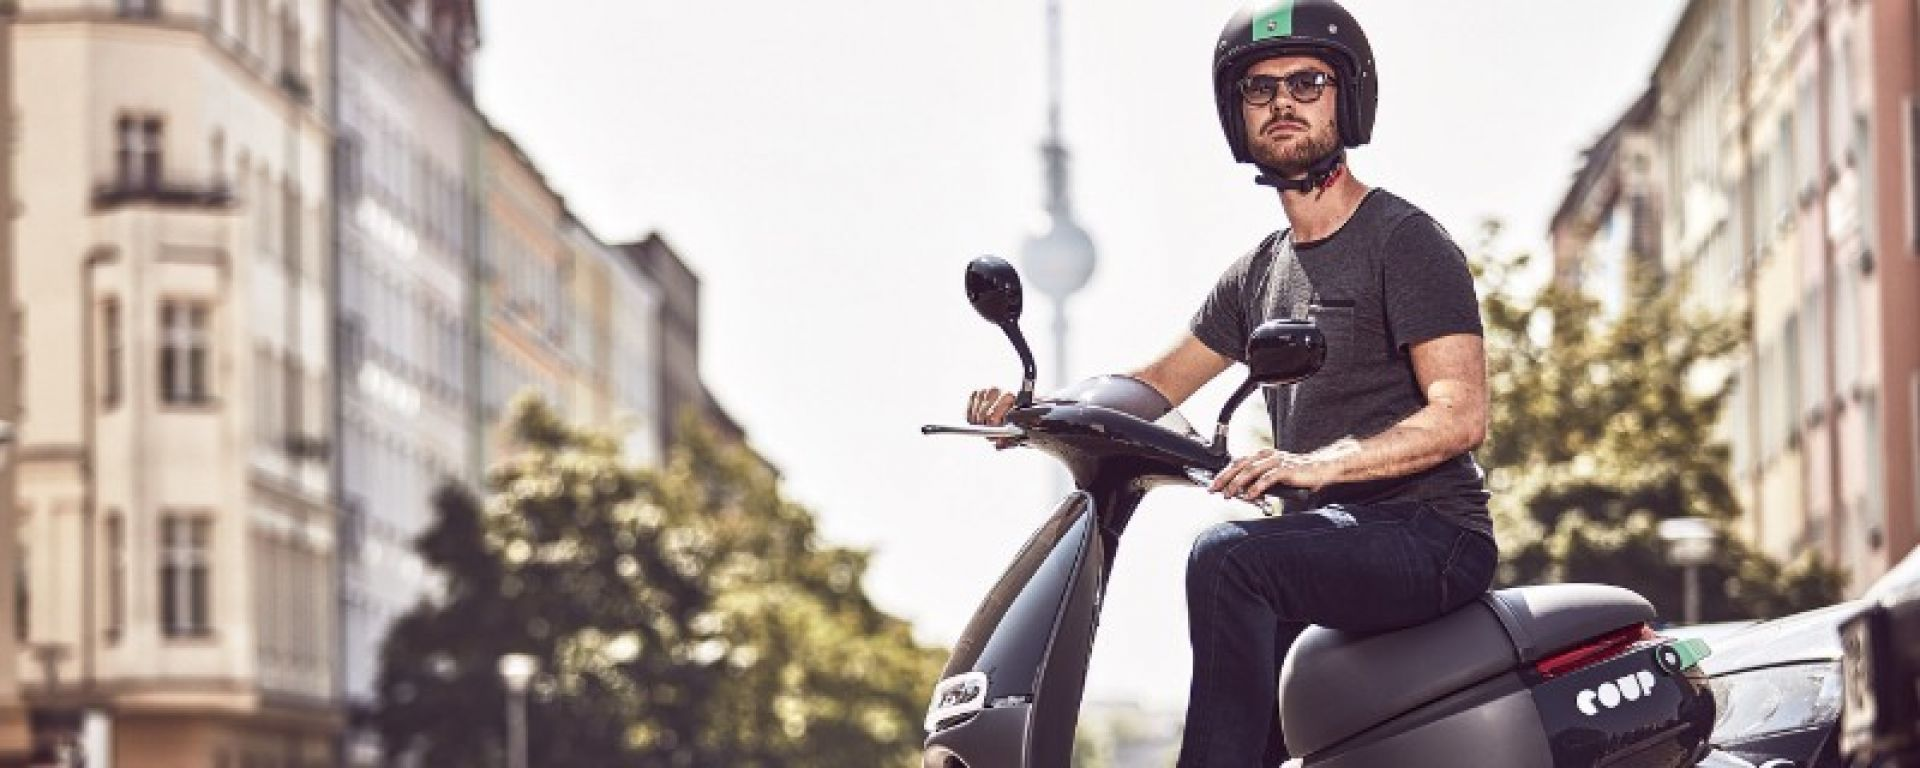 Bosch a Berlino lancia Coup: lo scooter sharing elettrico